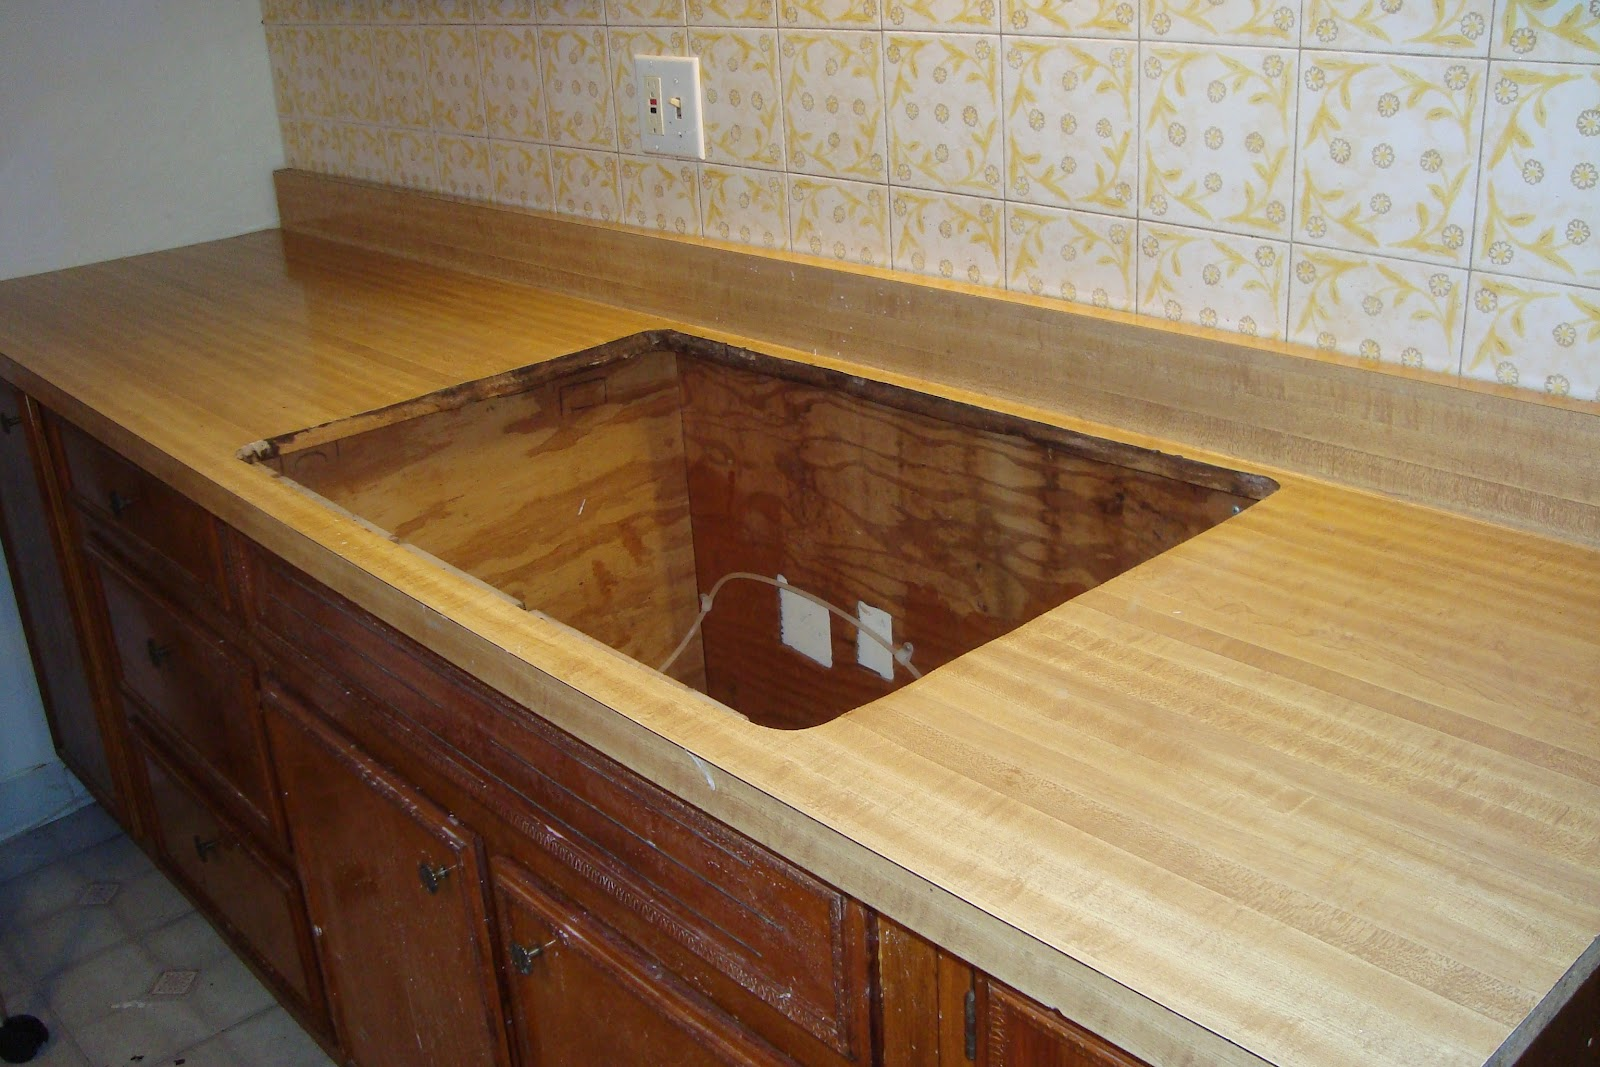 Giani Countertop Paint On Tile : These countertops are old and gross and so are the tiles on the wall ...